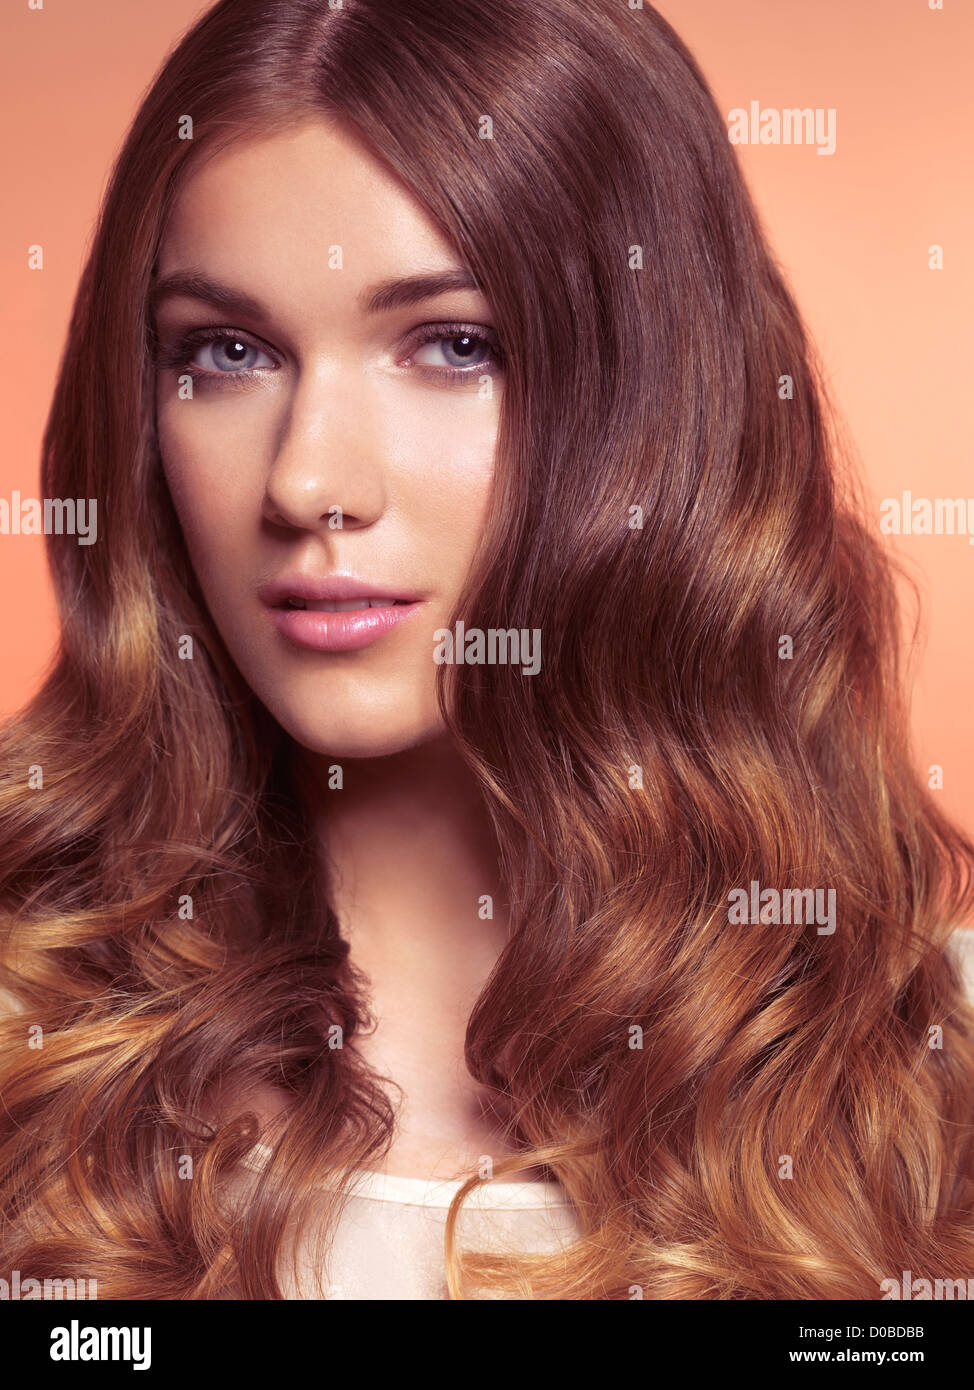 Beauty portrait of a young woman with long wavy brown hair - Stock Image